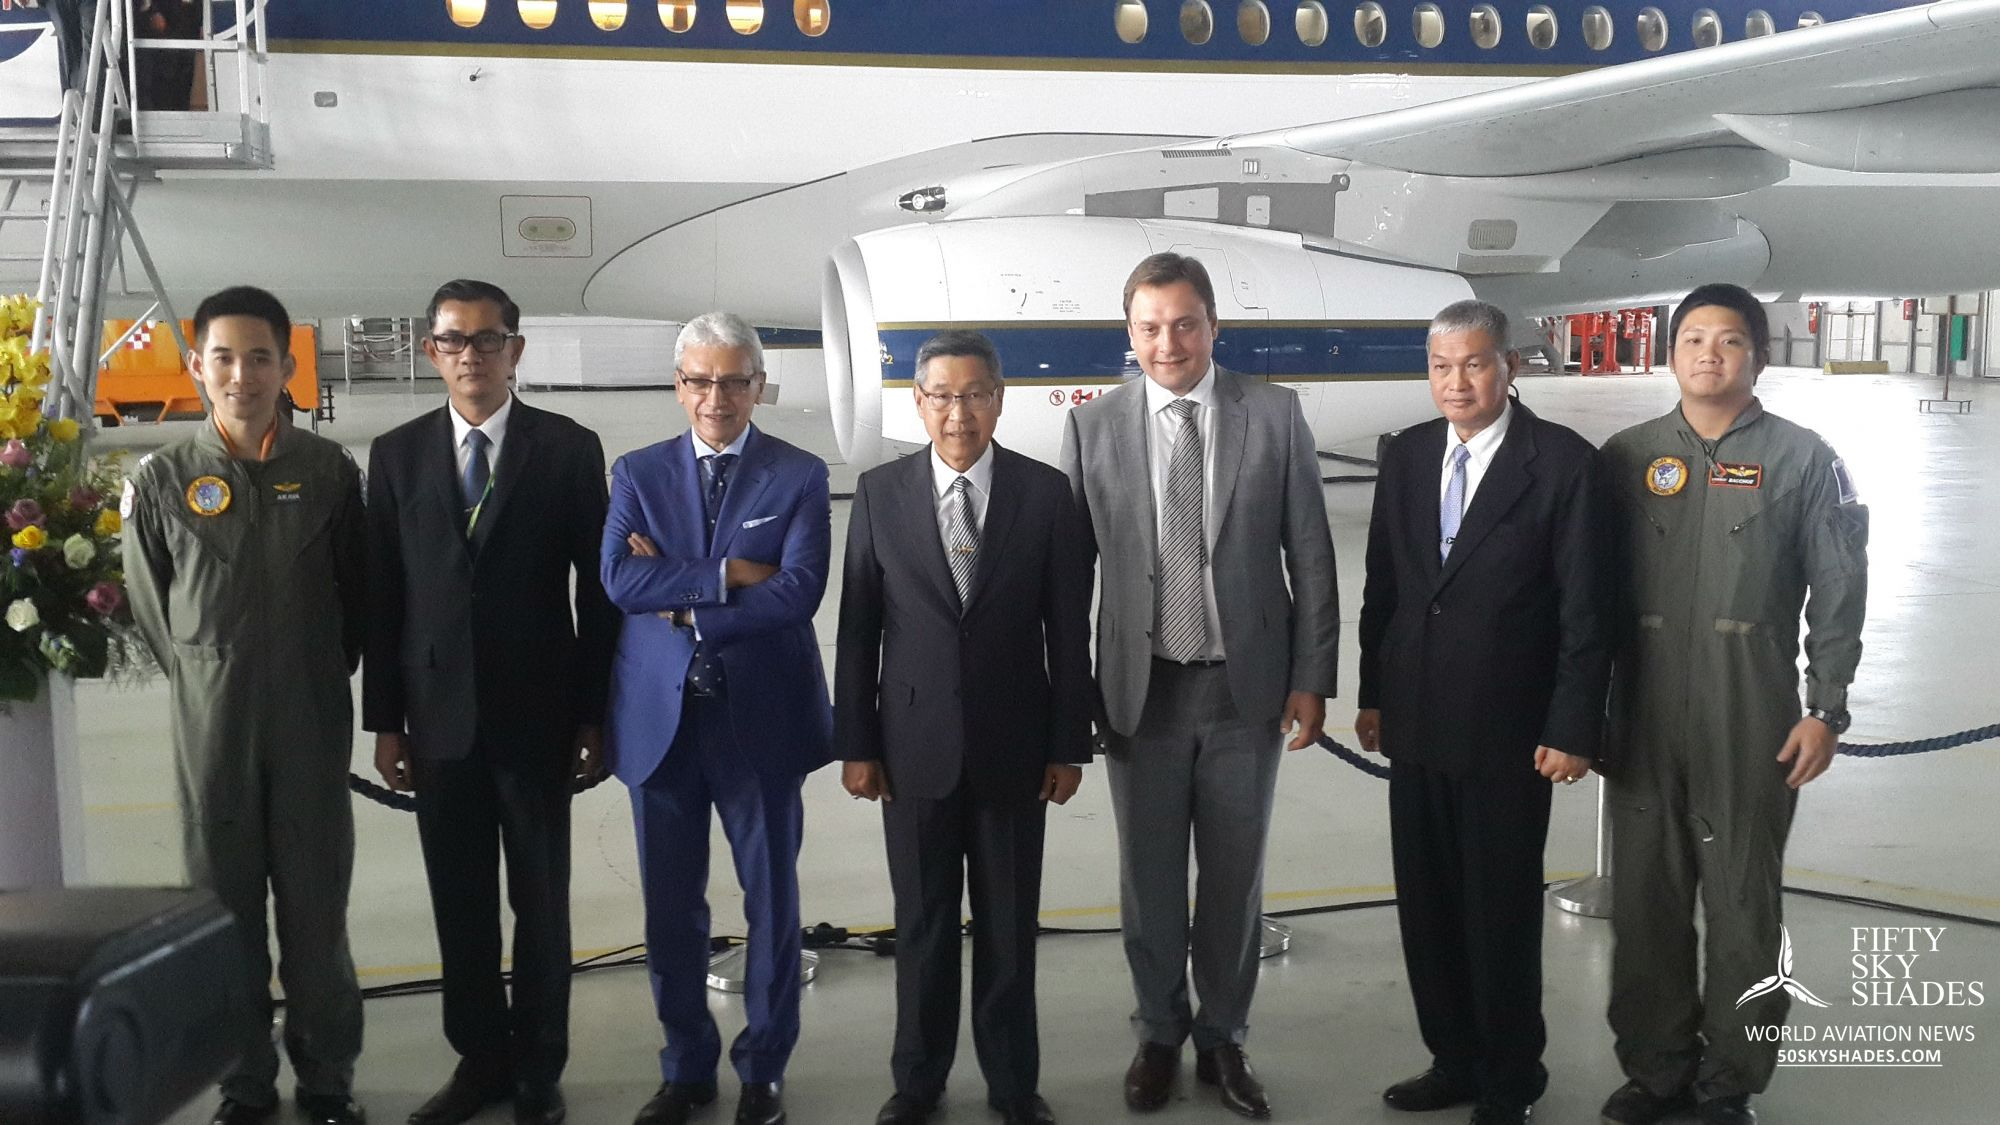 royal-thai-air-force-takes-delivery-of-sukhoi-business-jet-9045-RhG5GCi01t4bWj4xFaJtQVJj6.jpg